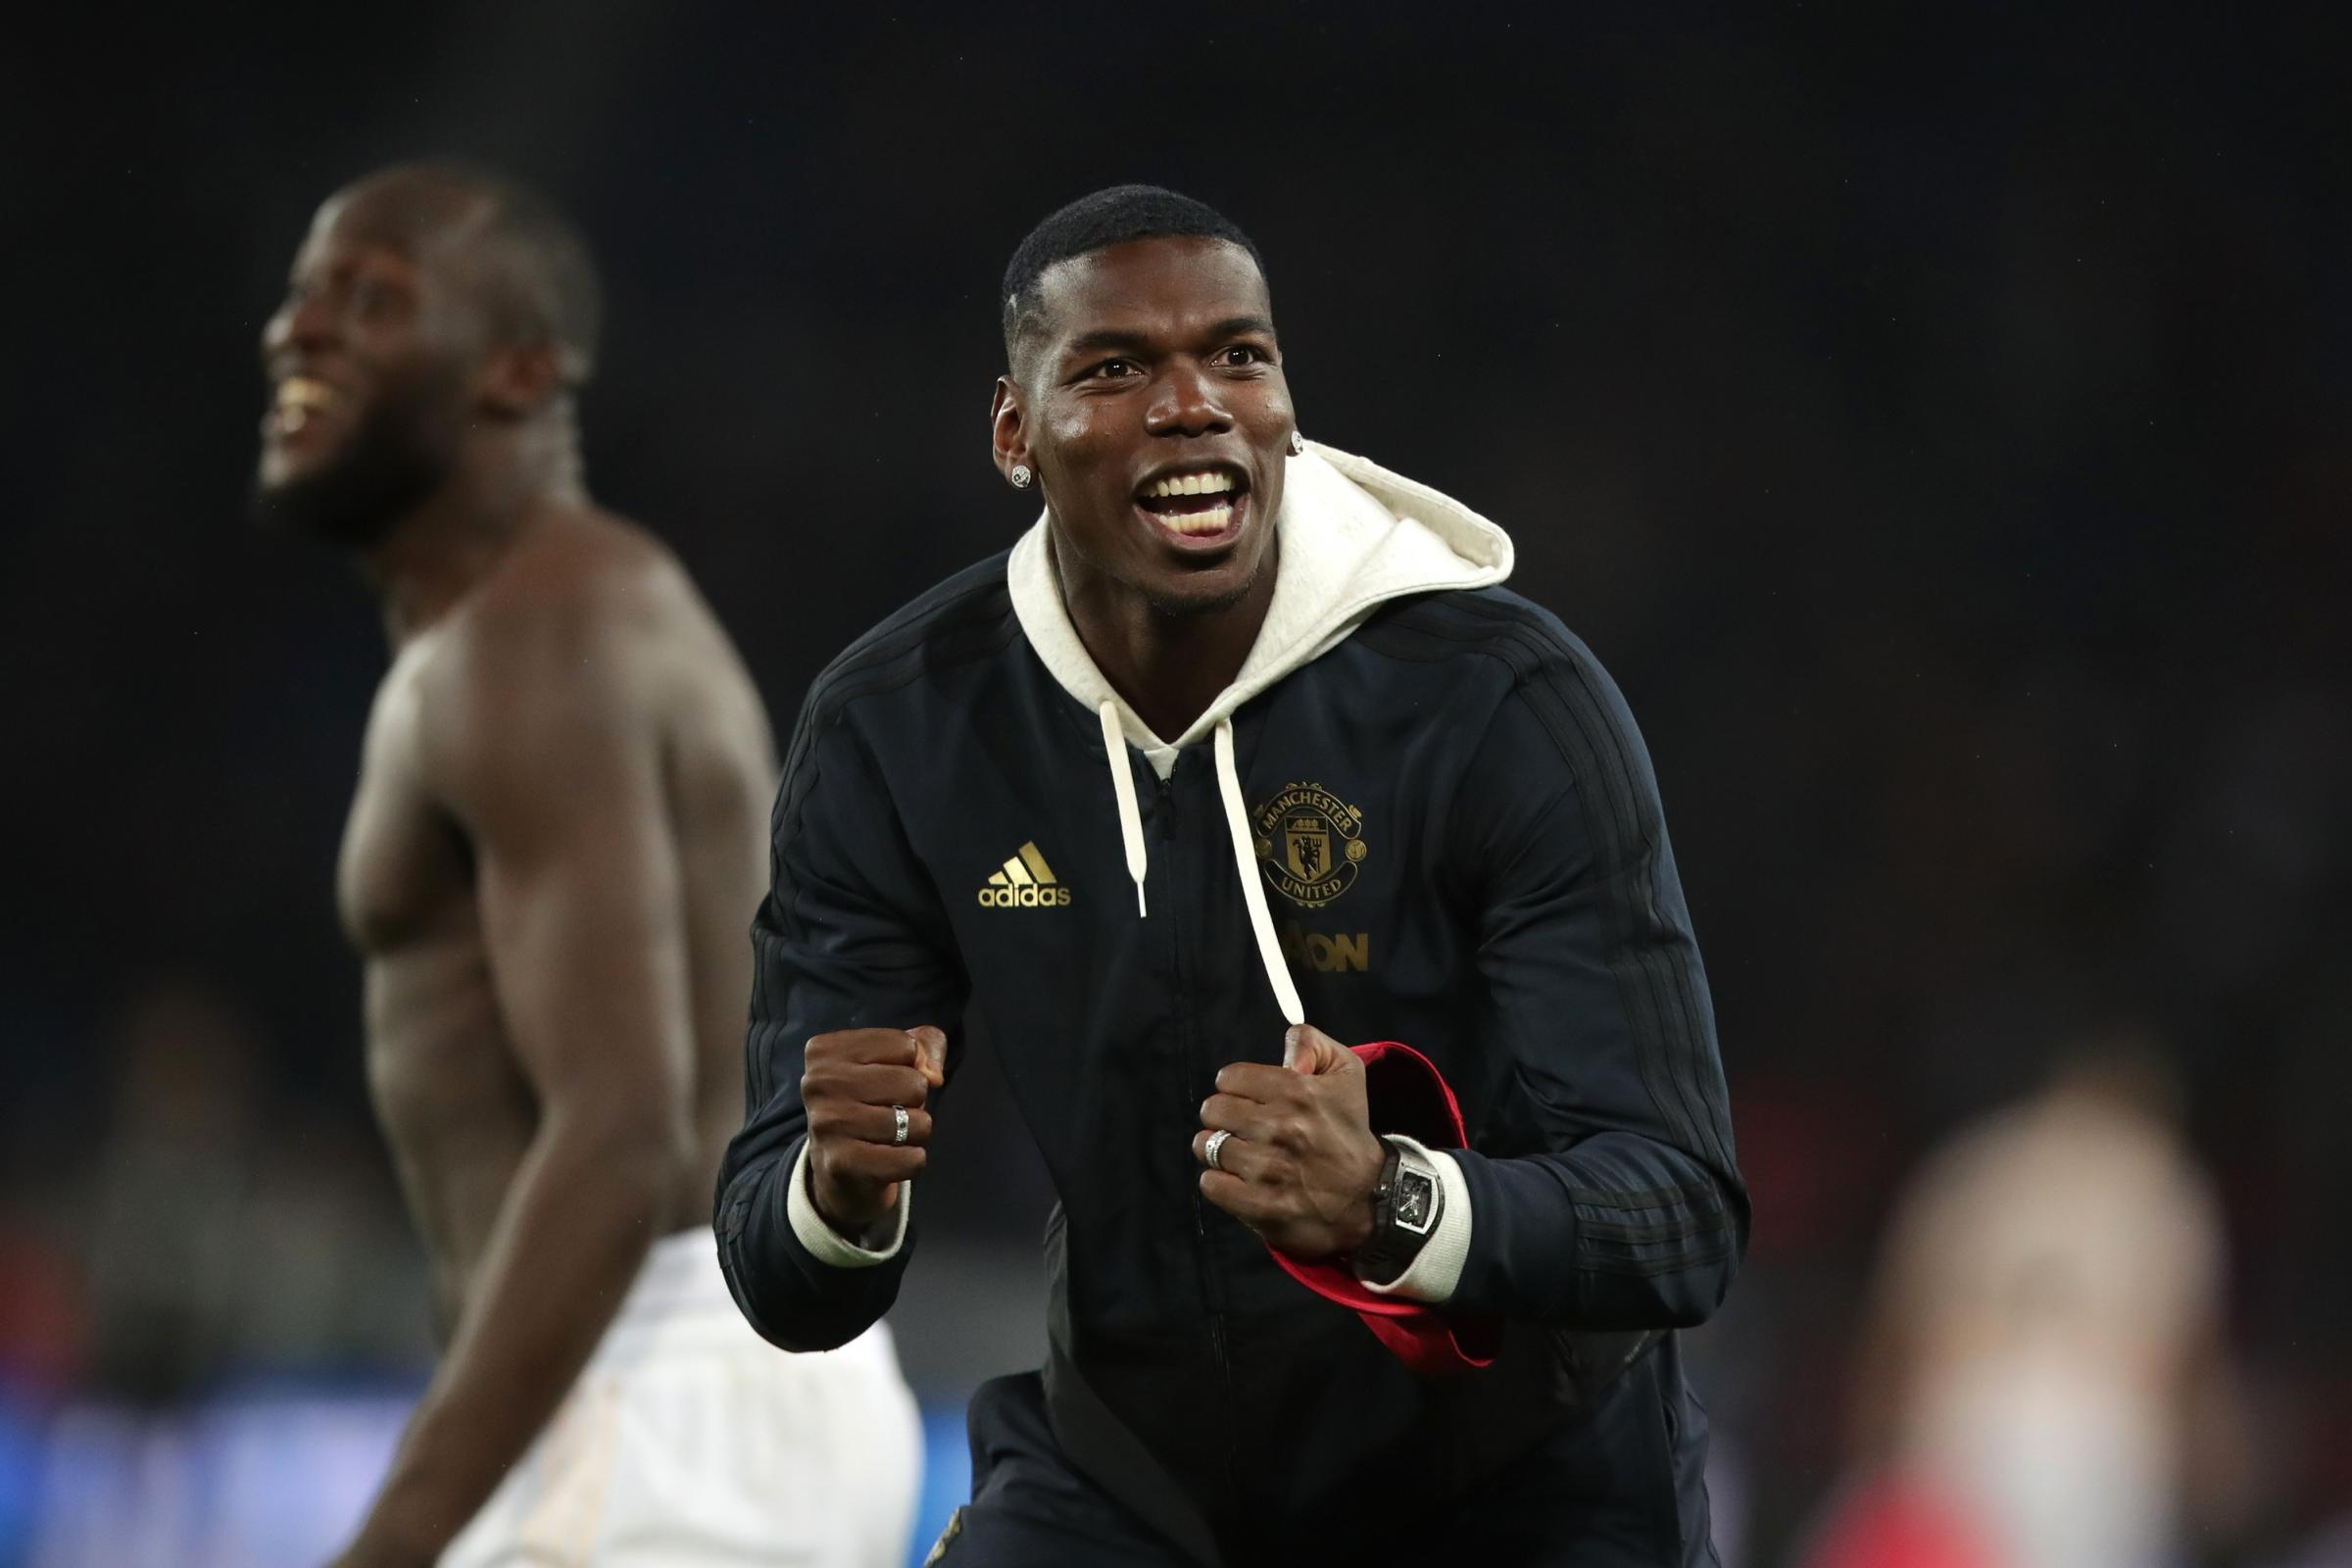 Manchester United's Paul Pogba is set to stay at Old Trafford